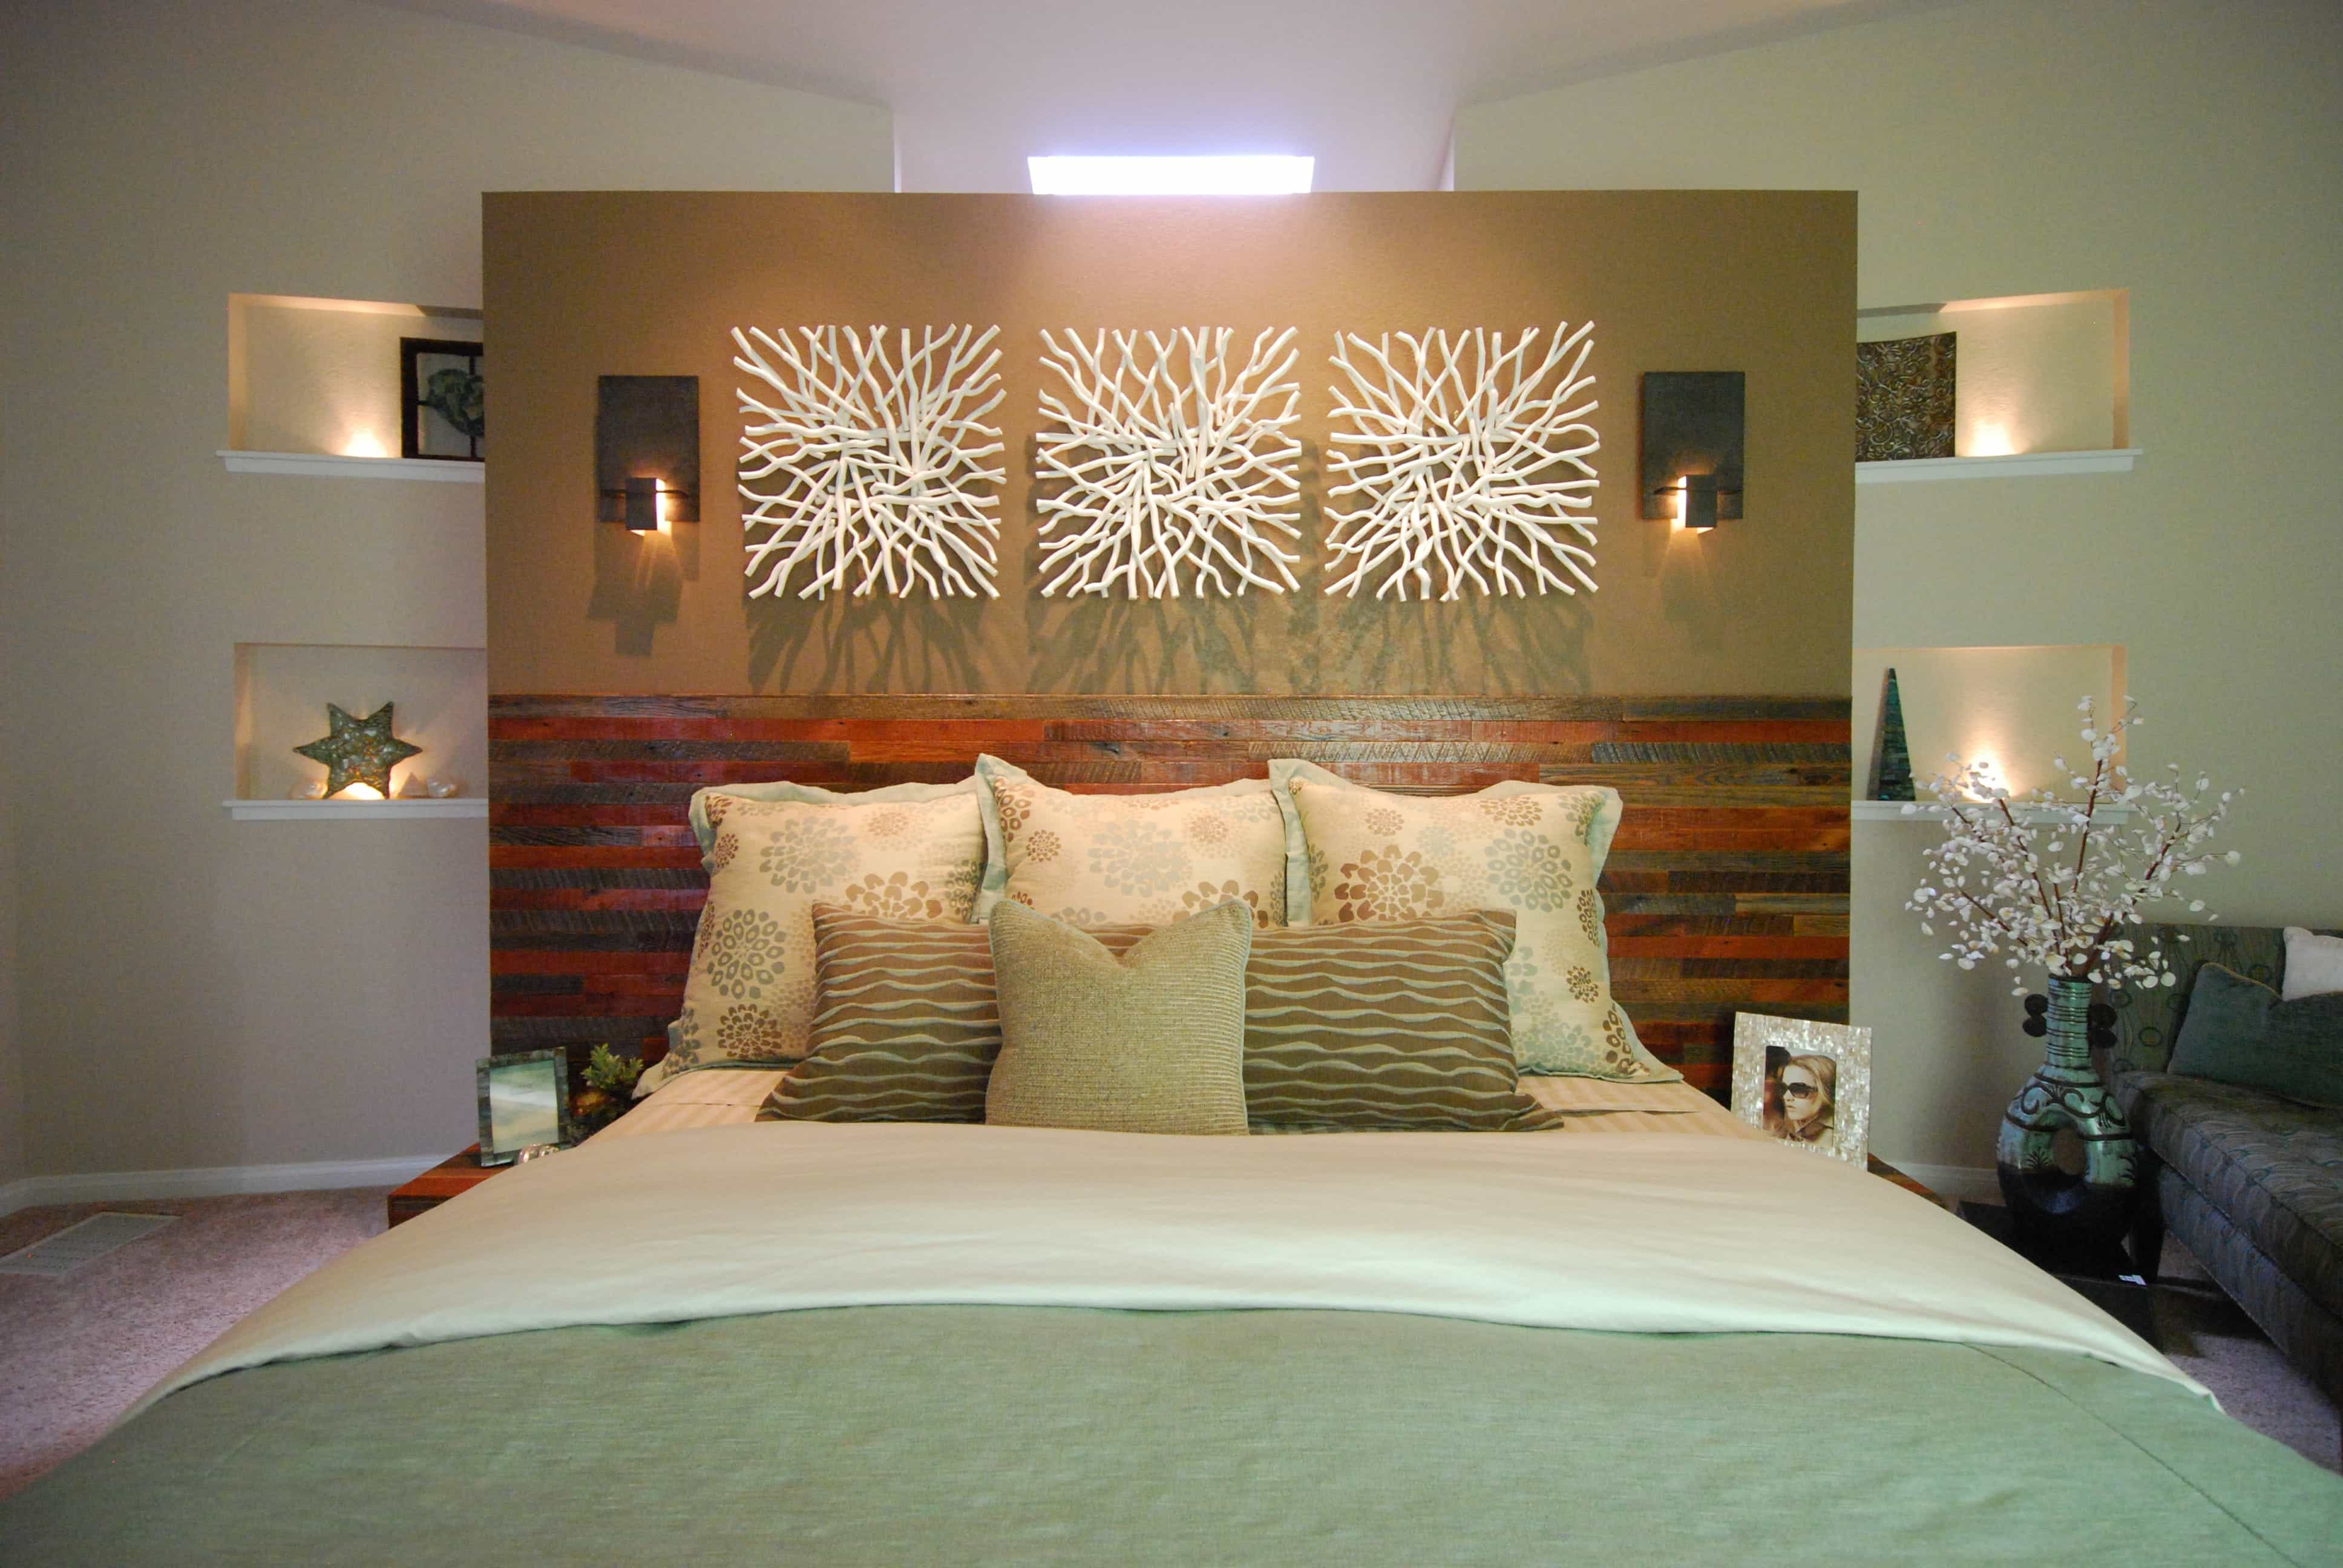 Master Bedroom With Floating Wall Decoration (Image 18 of 28)